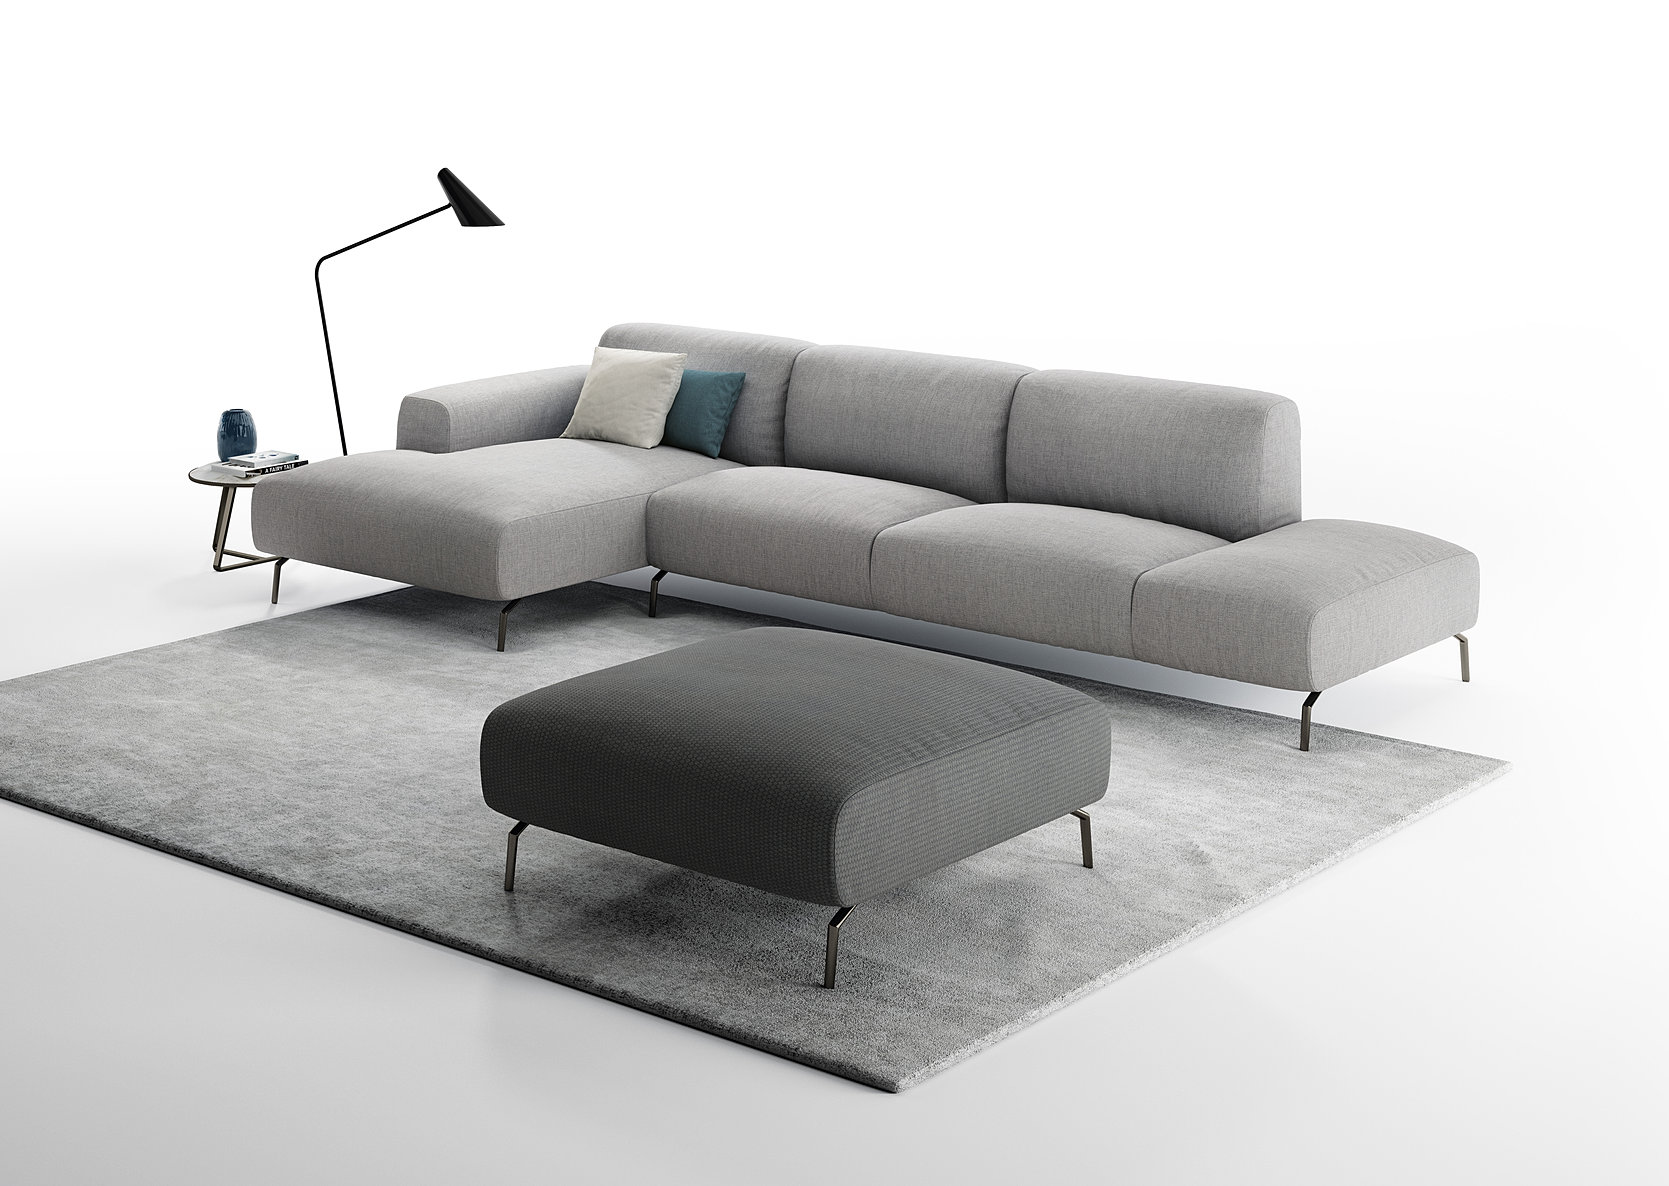 leather sofas auckland steam cleaning sofa ultimate living modern furniture store